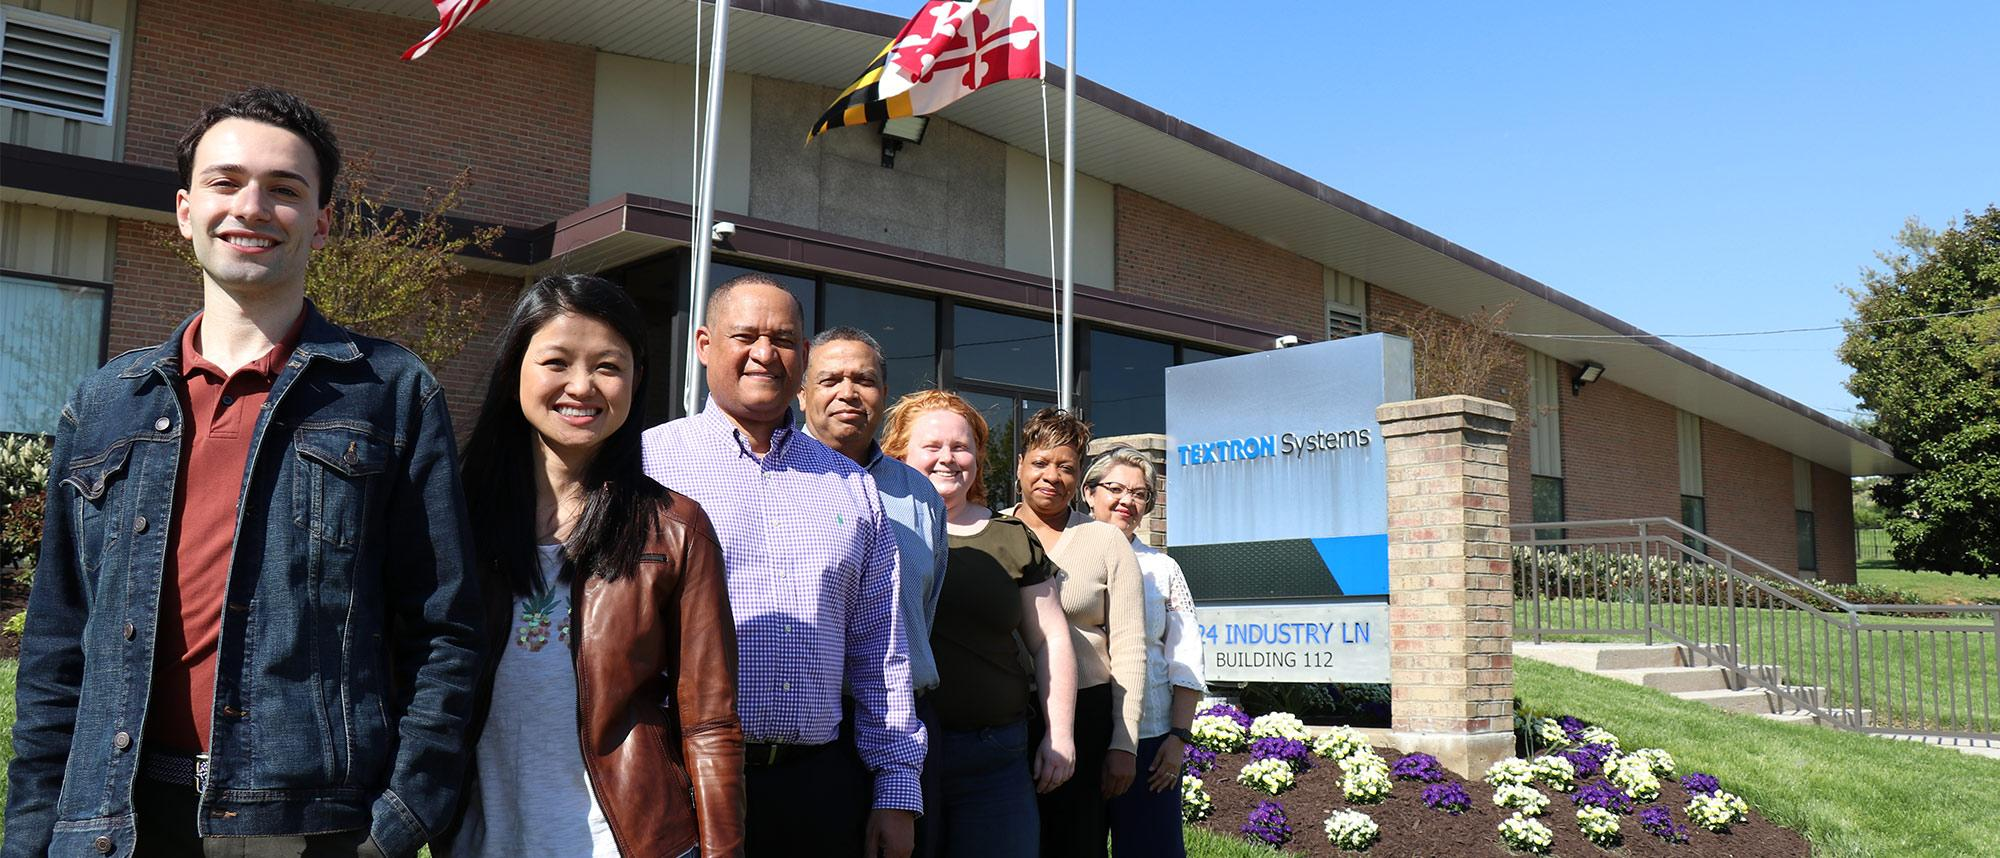 A picture of Textron Systems employees involved in diversity & inclusion initiatives